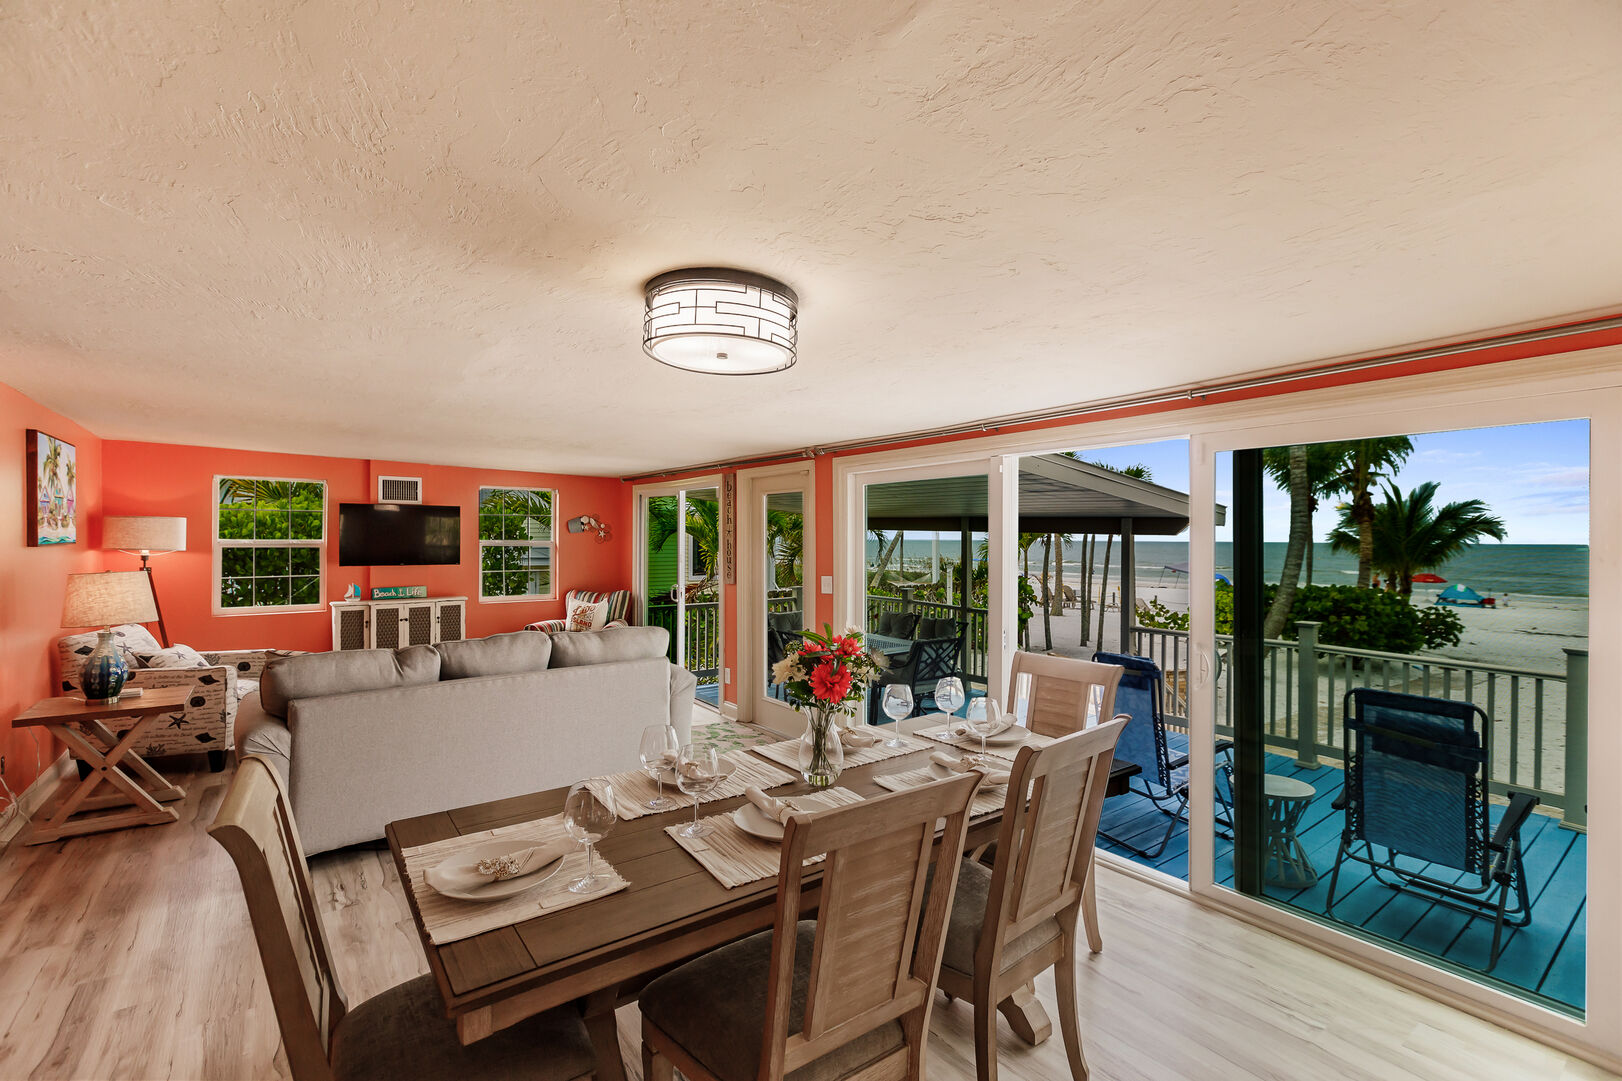 Beach Paradise Private Beach House Rental in Florida Livingroom and Dining Room